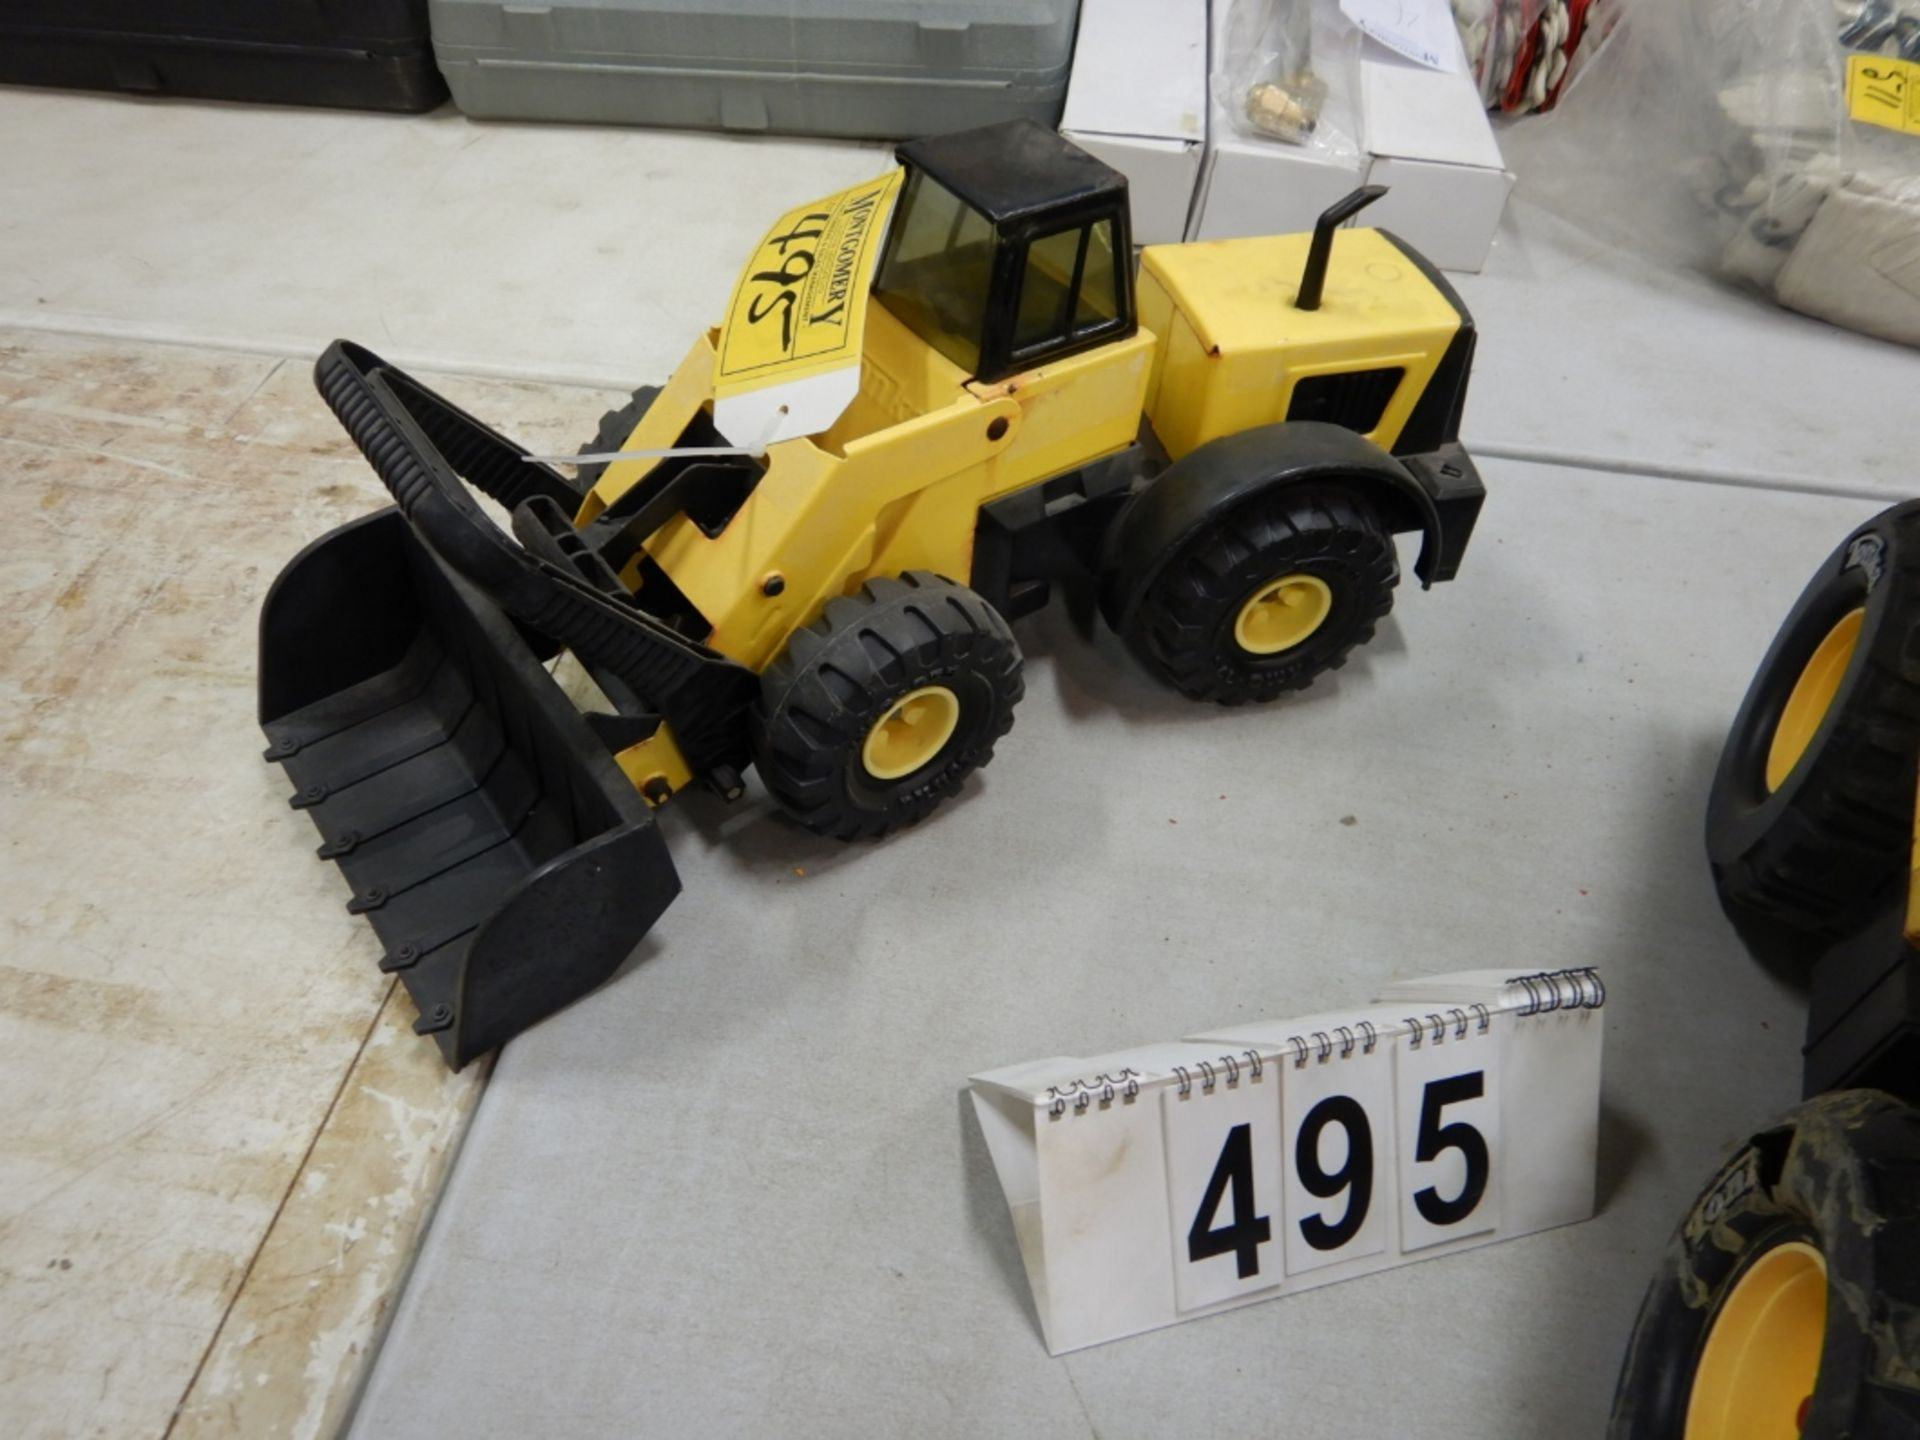 TONKA WHEEL LOADER, TONKA MINING TRUCK - Image 5 of 5